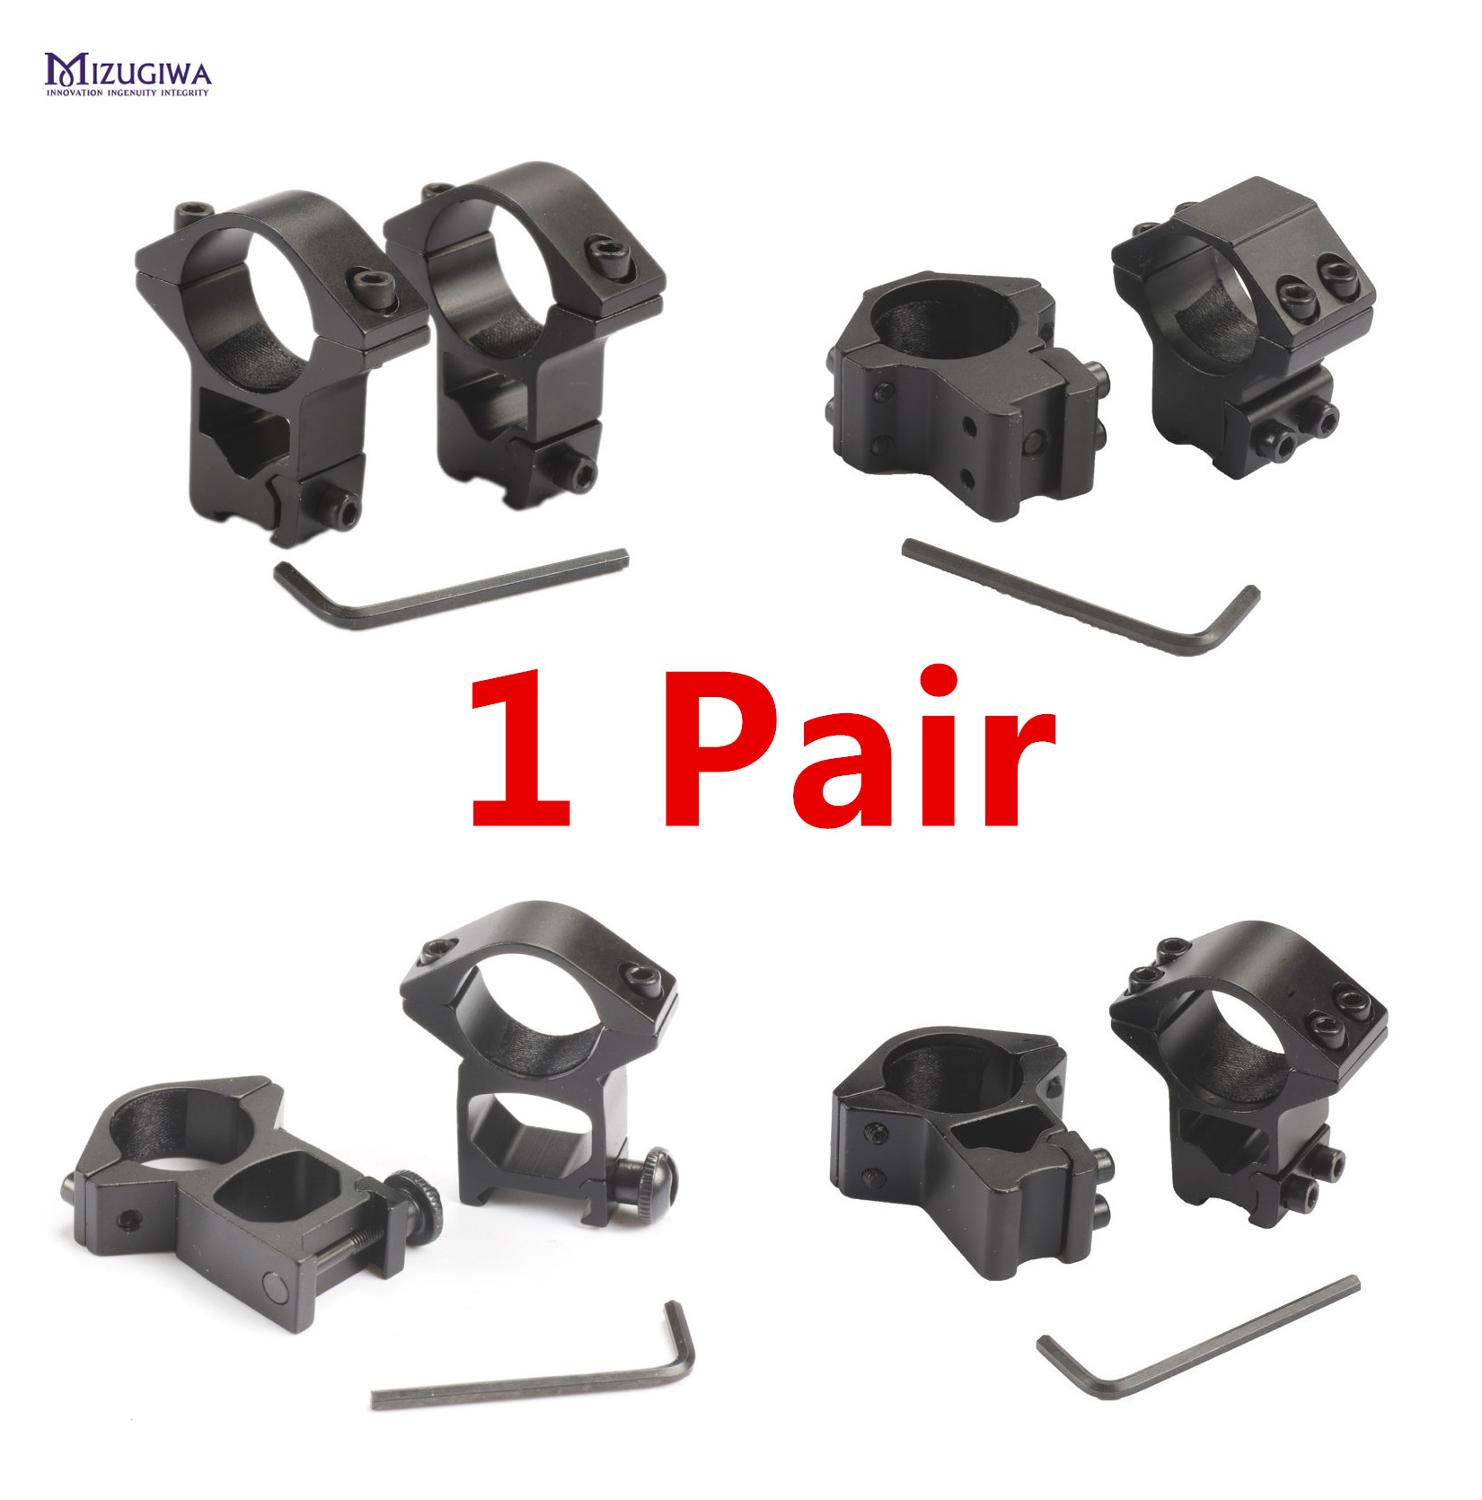 1 Pair MIZUGIWA Scope Mount Anelli di 25.4 millimetri/30 millimetri Del Tessitore di 11mm / 20 millimetri guida di Picatinny Per ottica Sight Pistola Airsoft Accessori